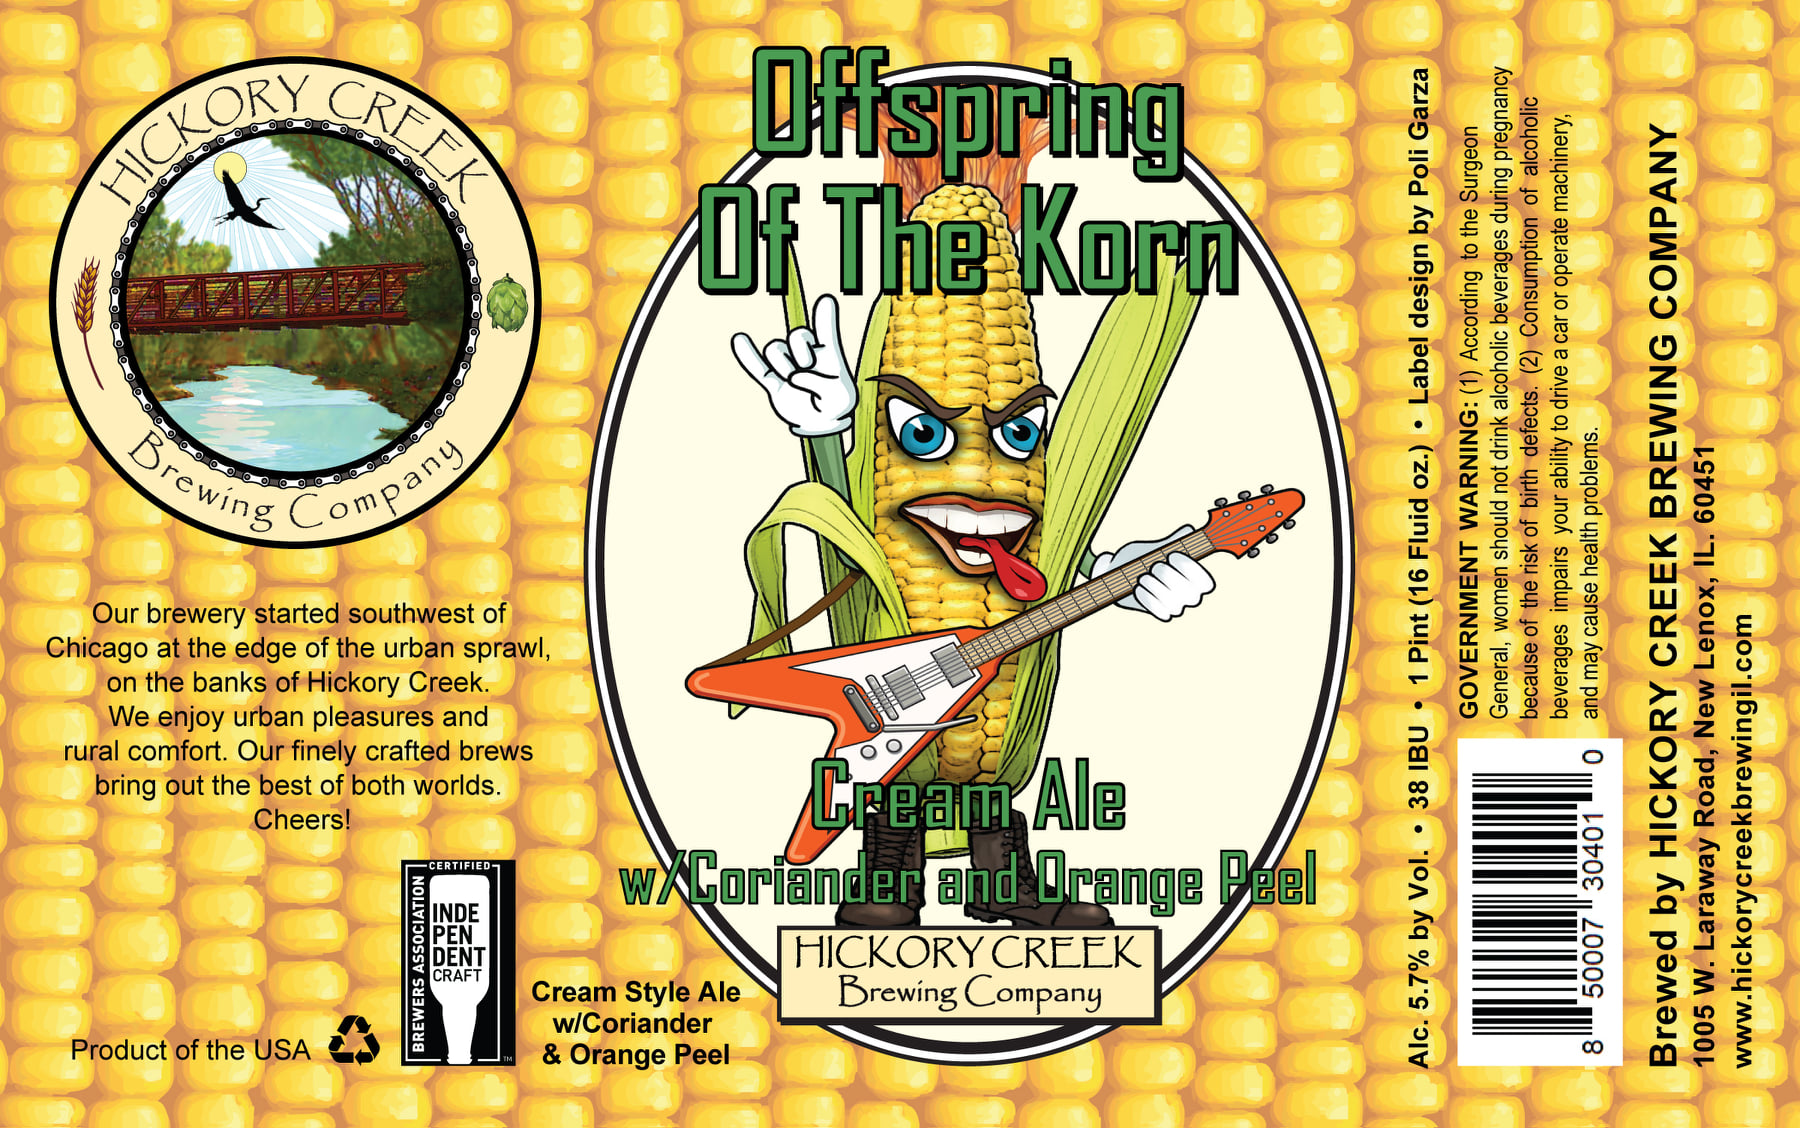 Hickory Creek Brewing Company's beer label for Offspring of the Korn